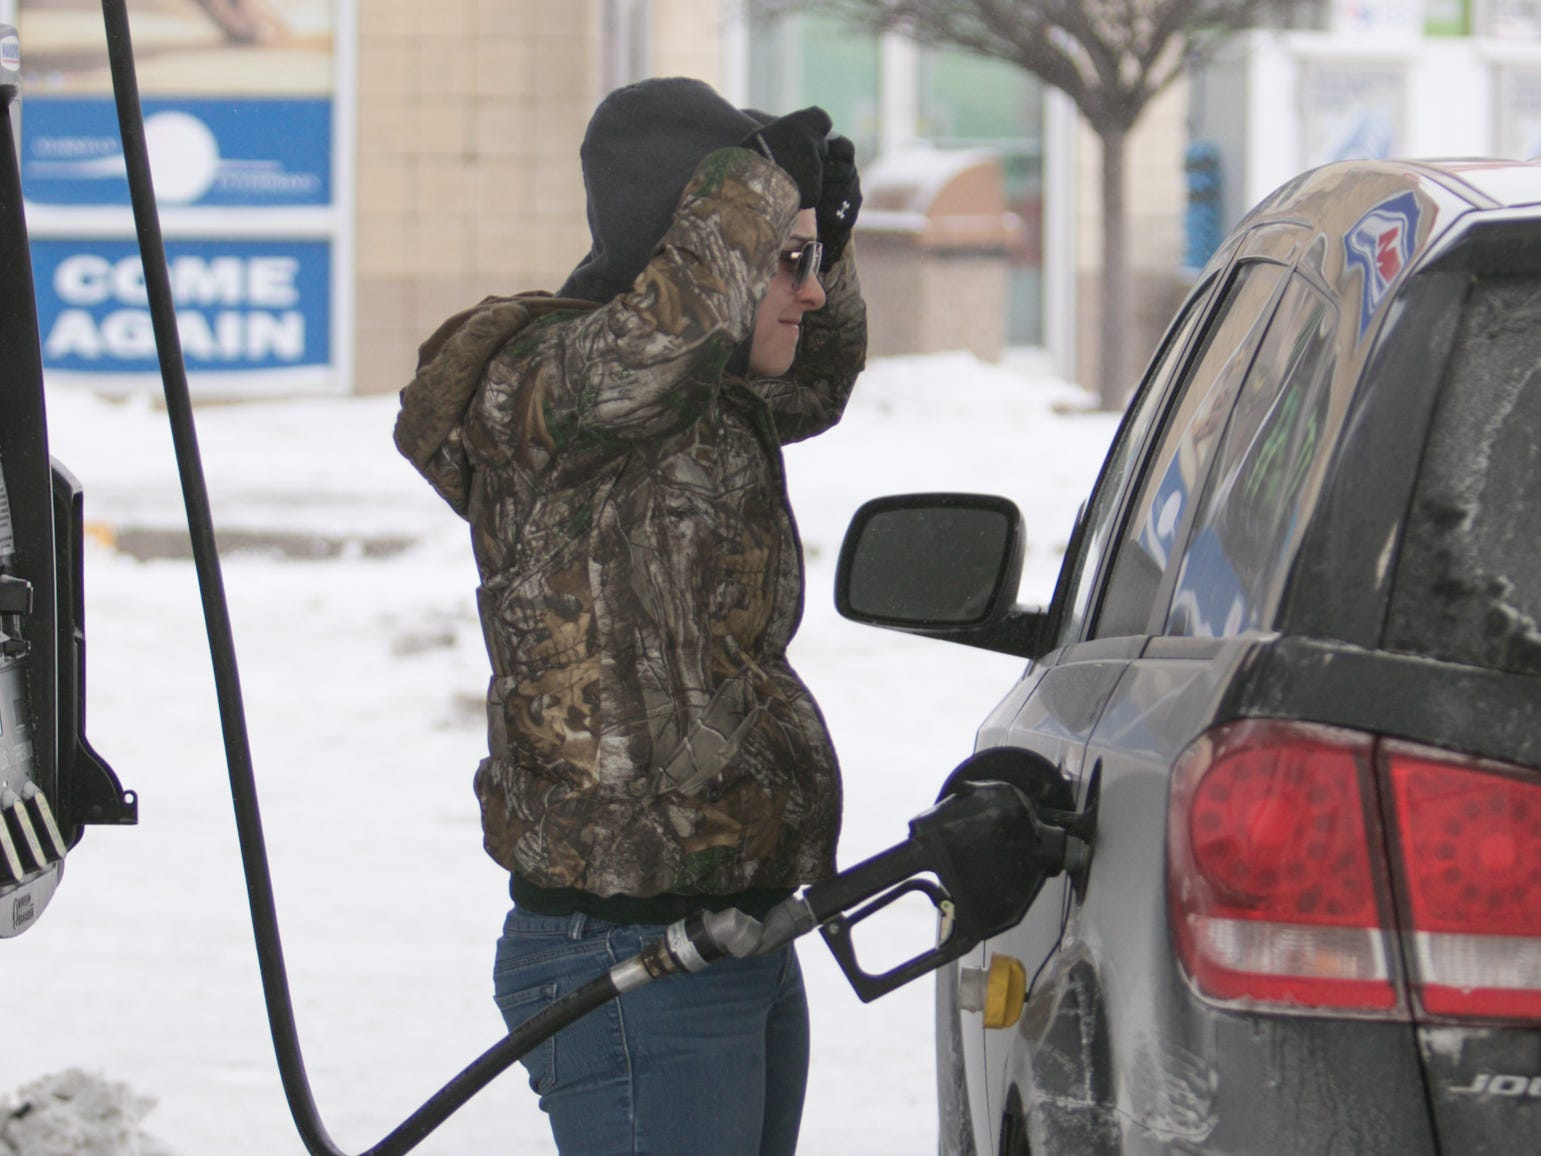 Filling her tank from the comfort from her vehicle's interior, Shelbey Carey of Lenawee County pulls her hood over her head to stay warm as she takes the nozzle out at the Marathon gas station at 1360 N. Burkhart Rd. Wednesday, Jan. 30, 2019.